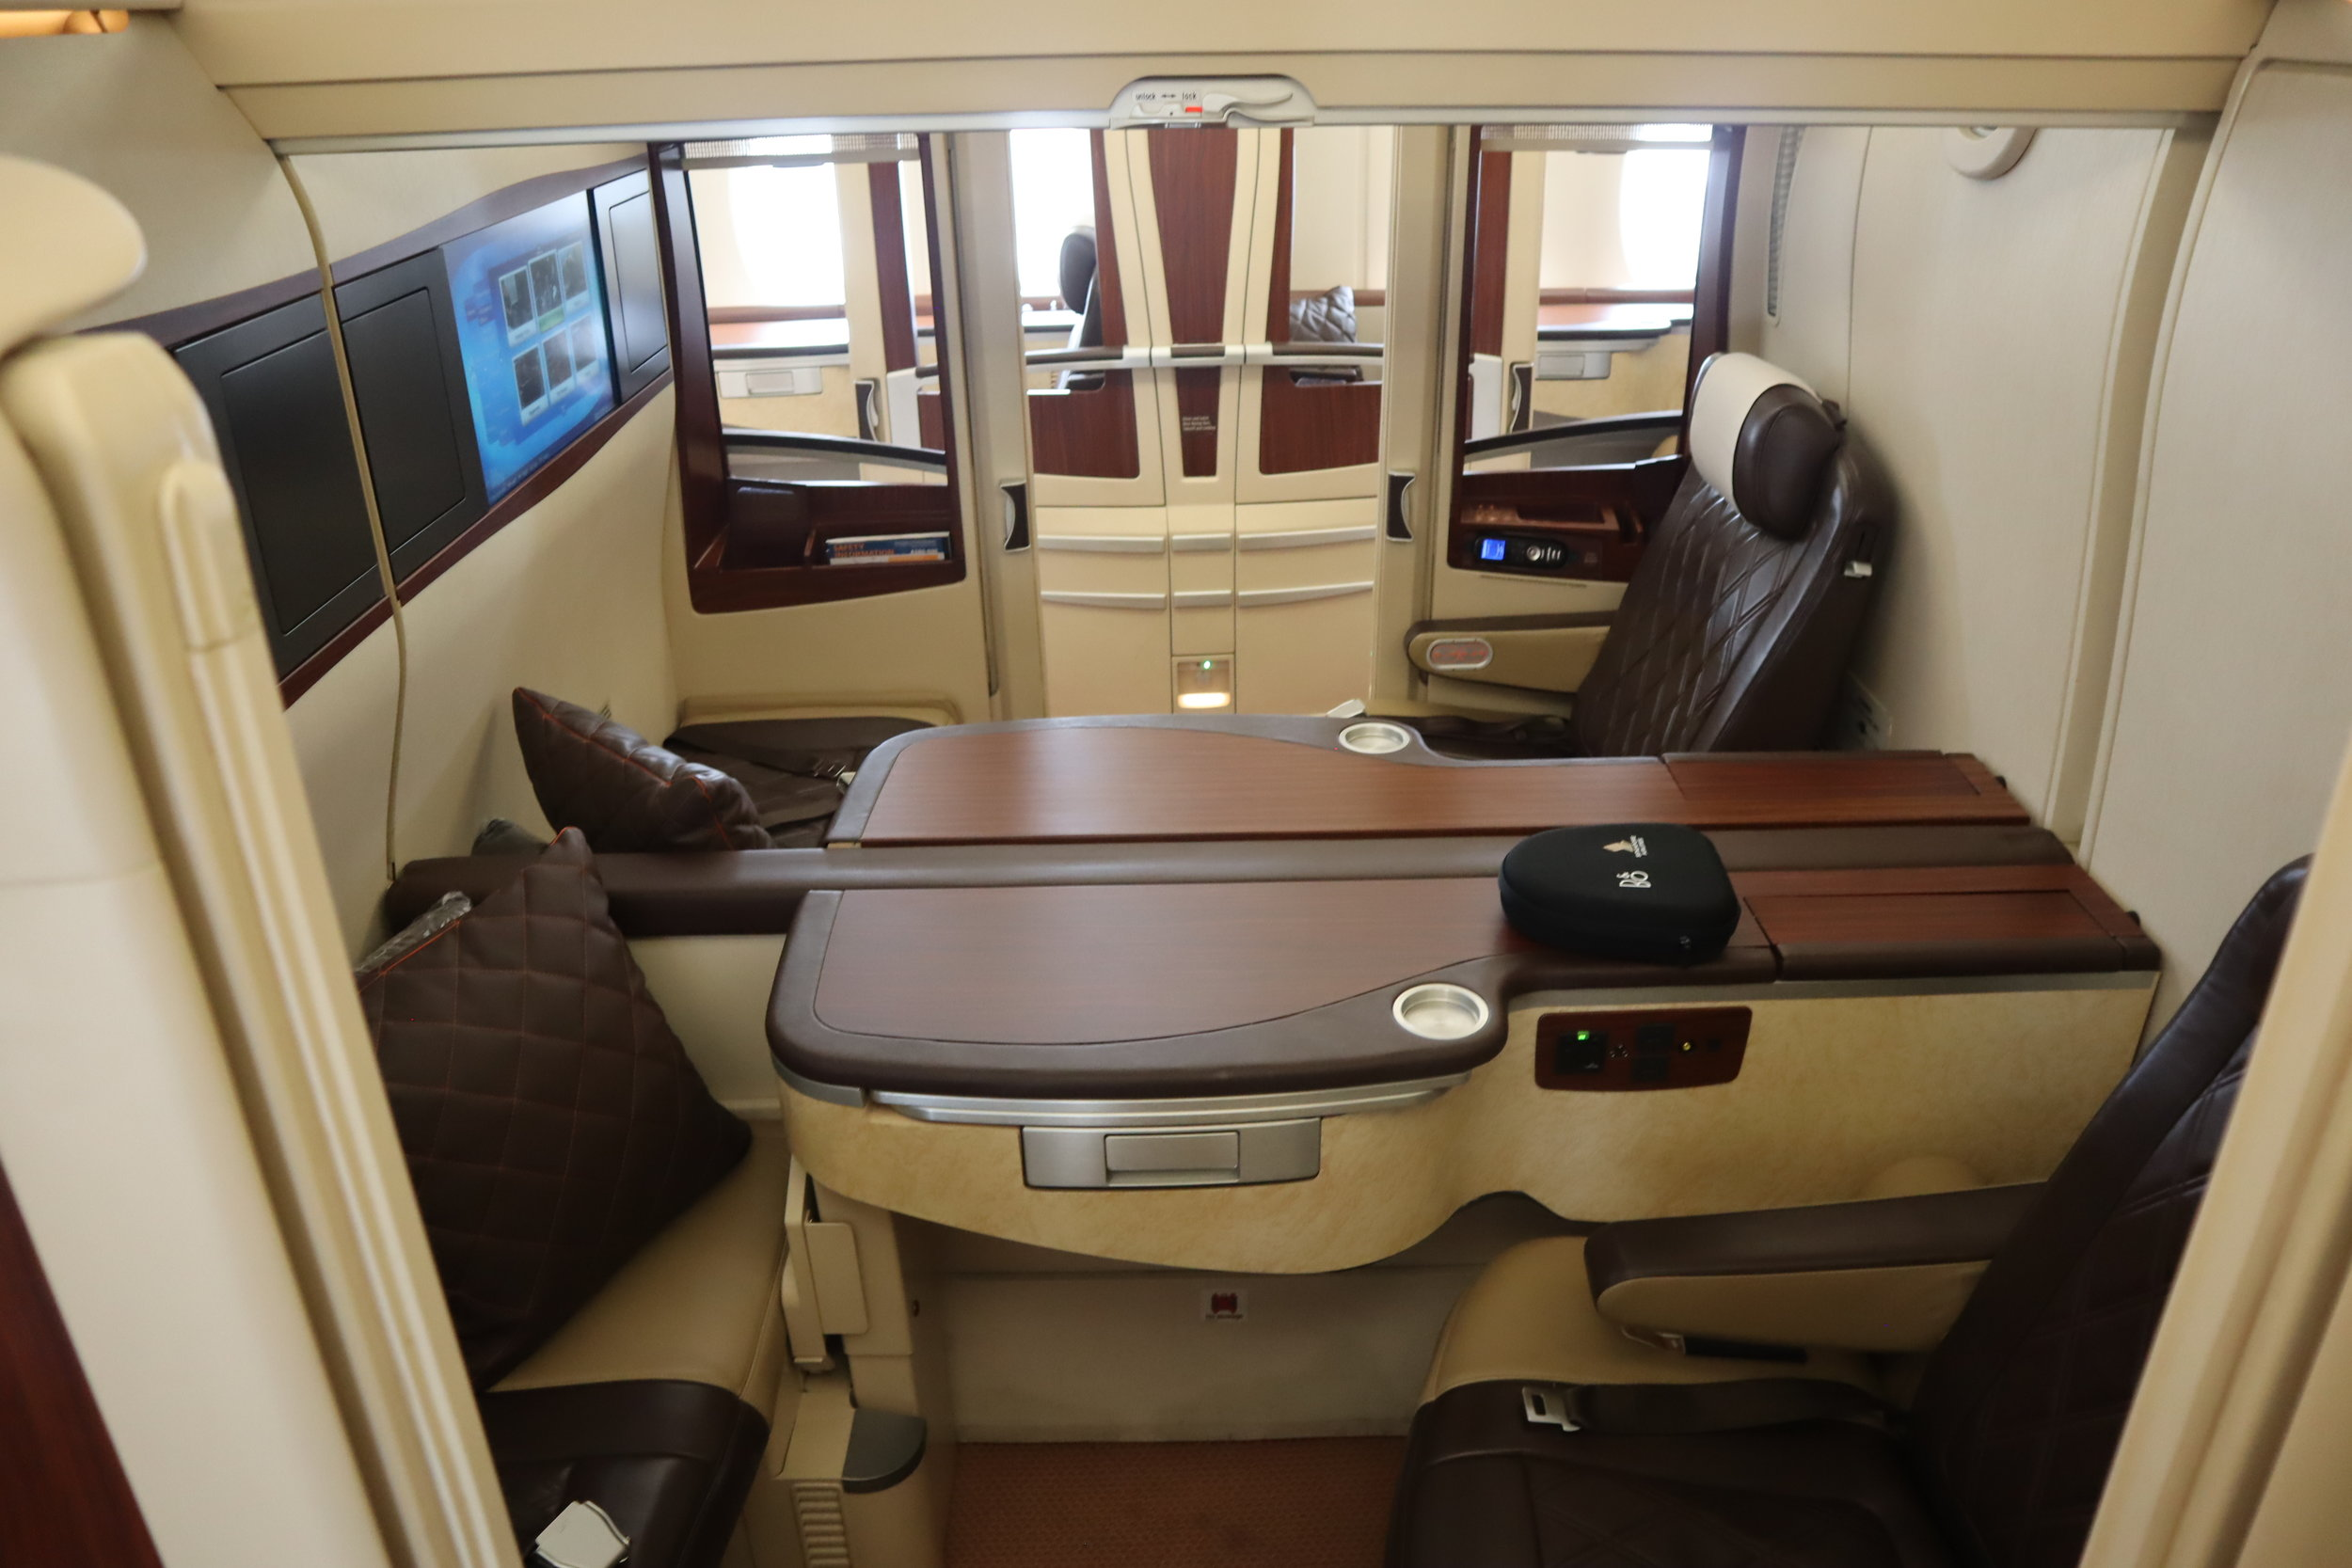 Singapore Airlines Suites Class – Seats 3C and 3D